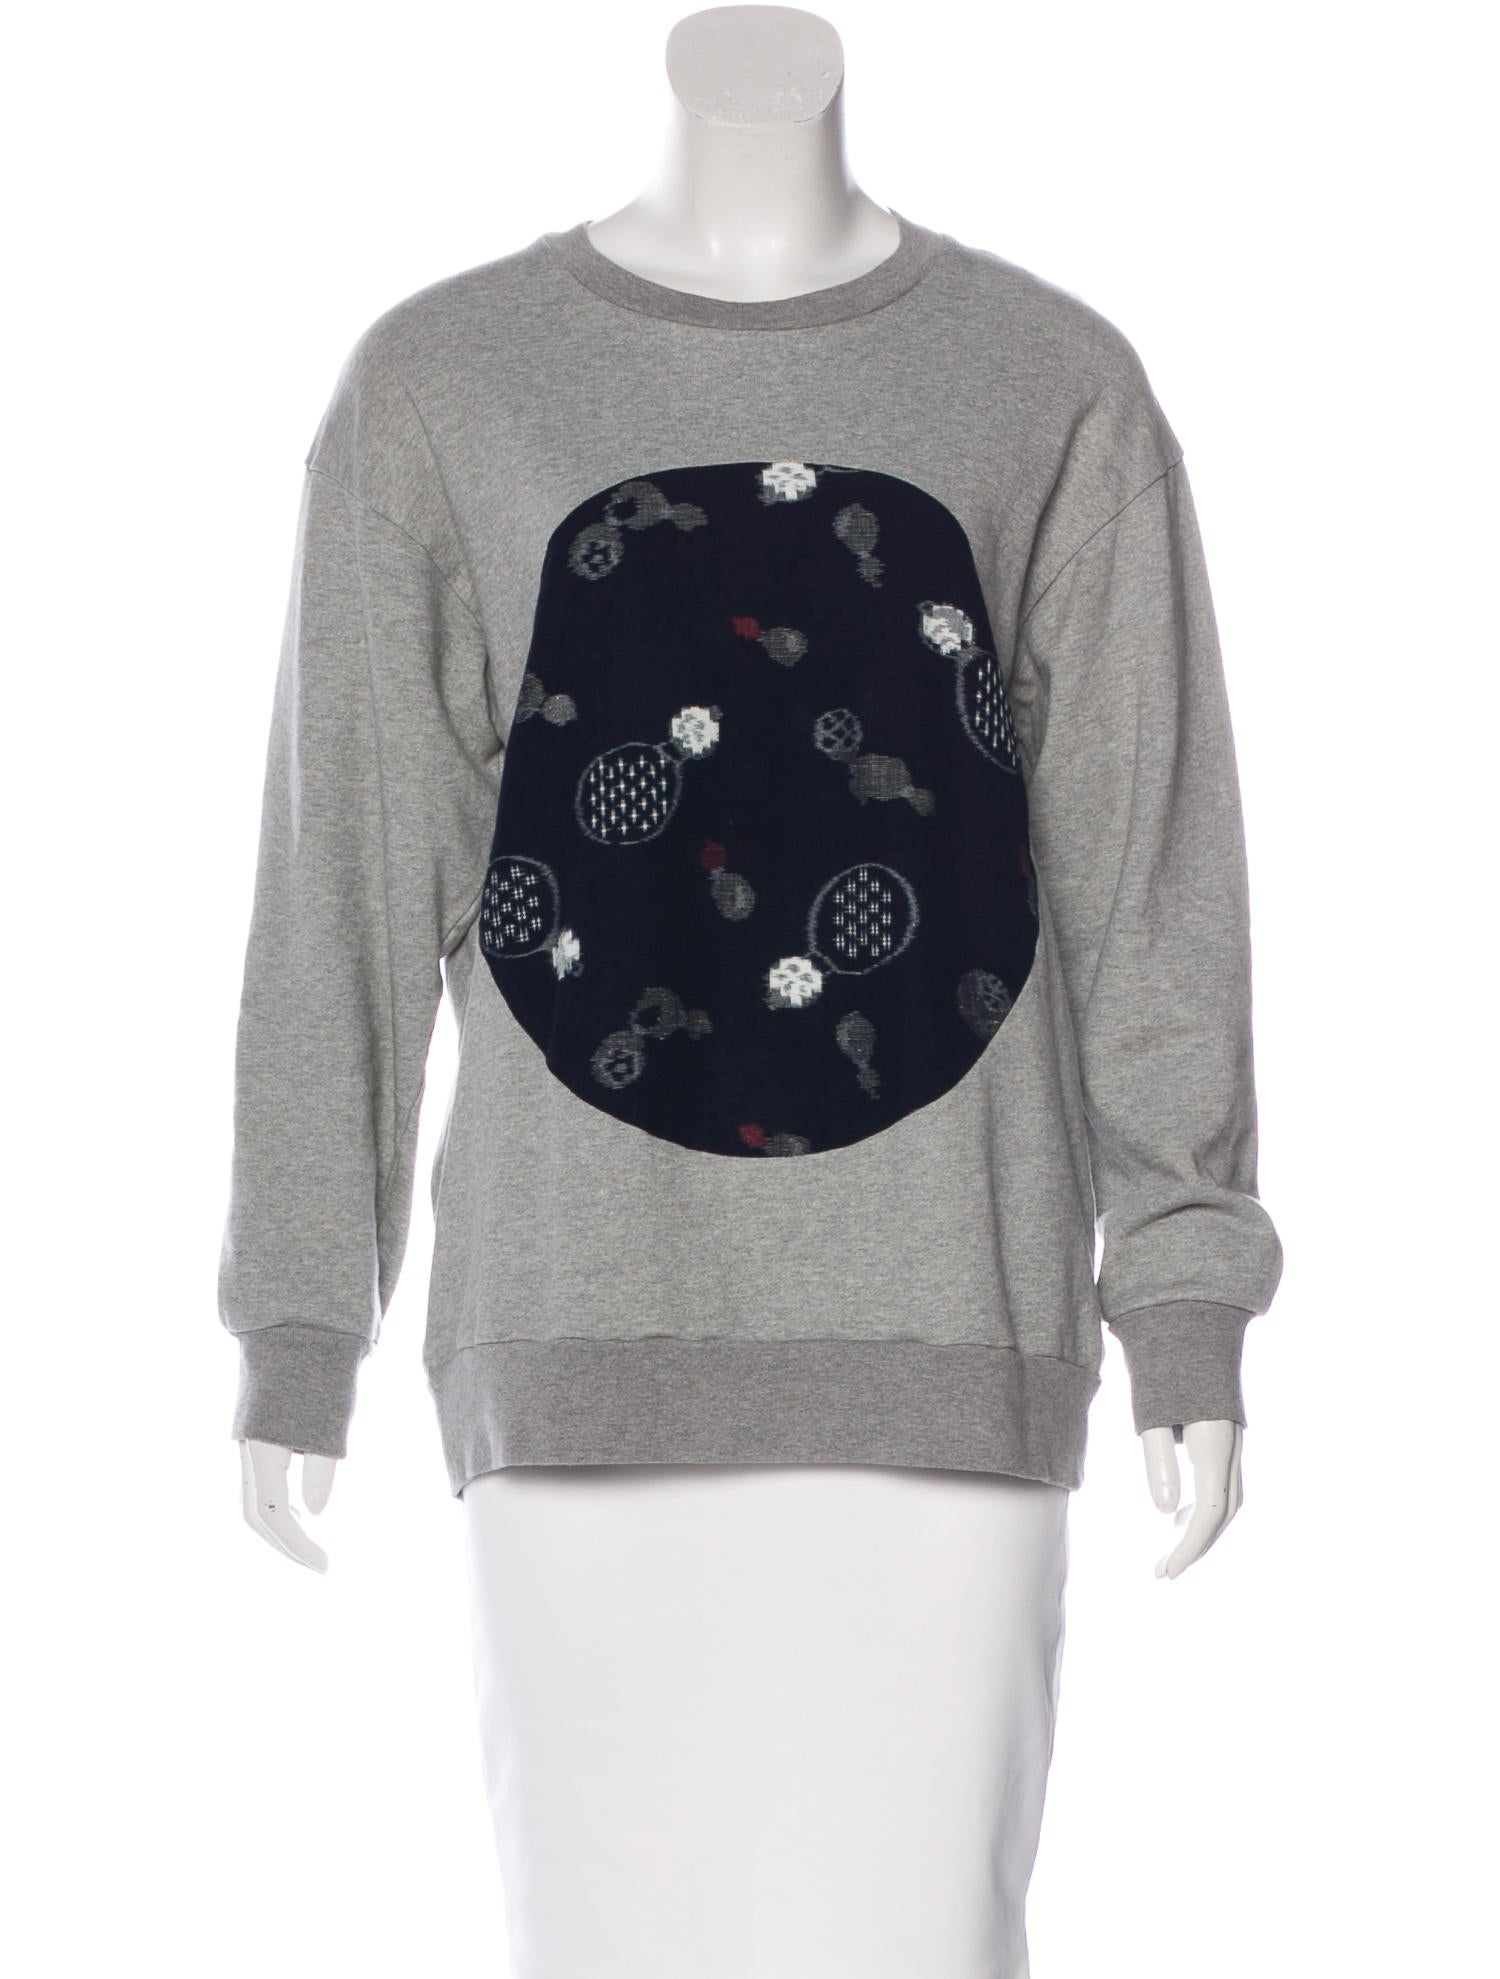 Cosmic wonder light source patterned long sleeve for Cosmic pattern clothing